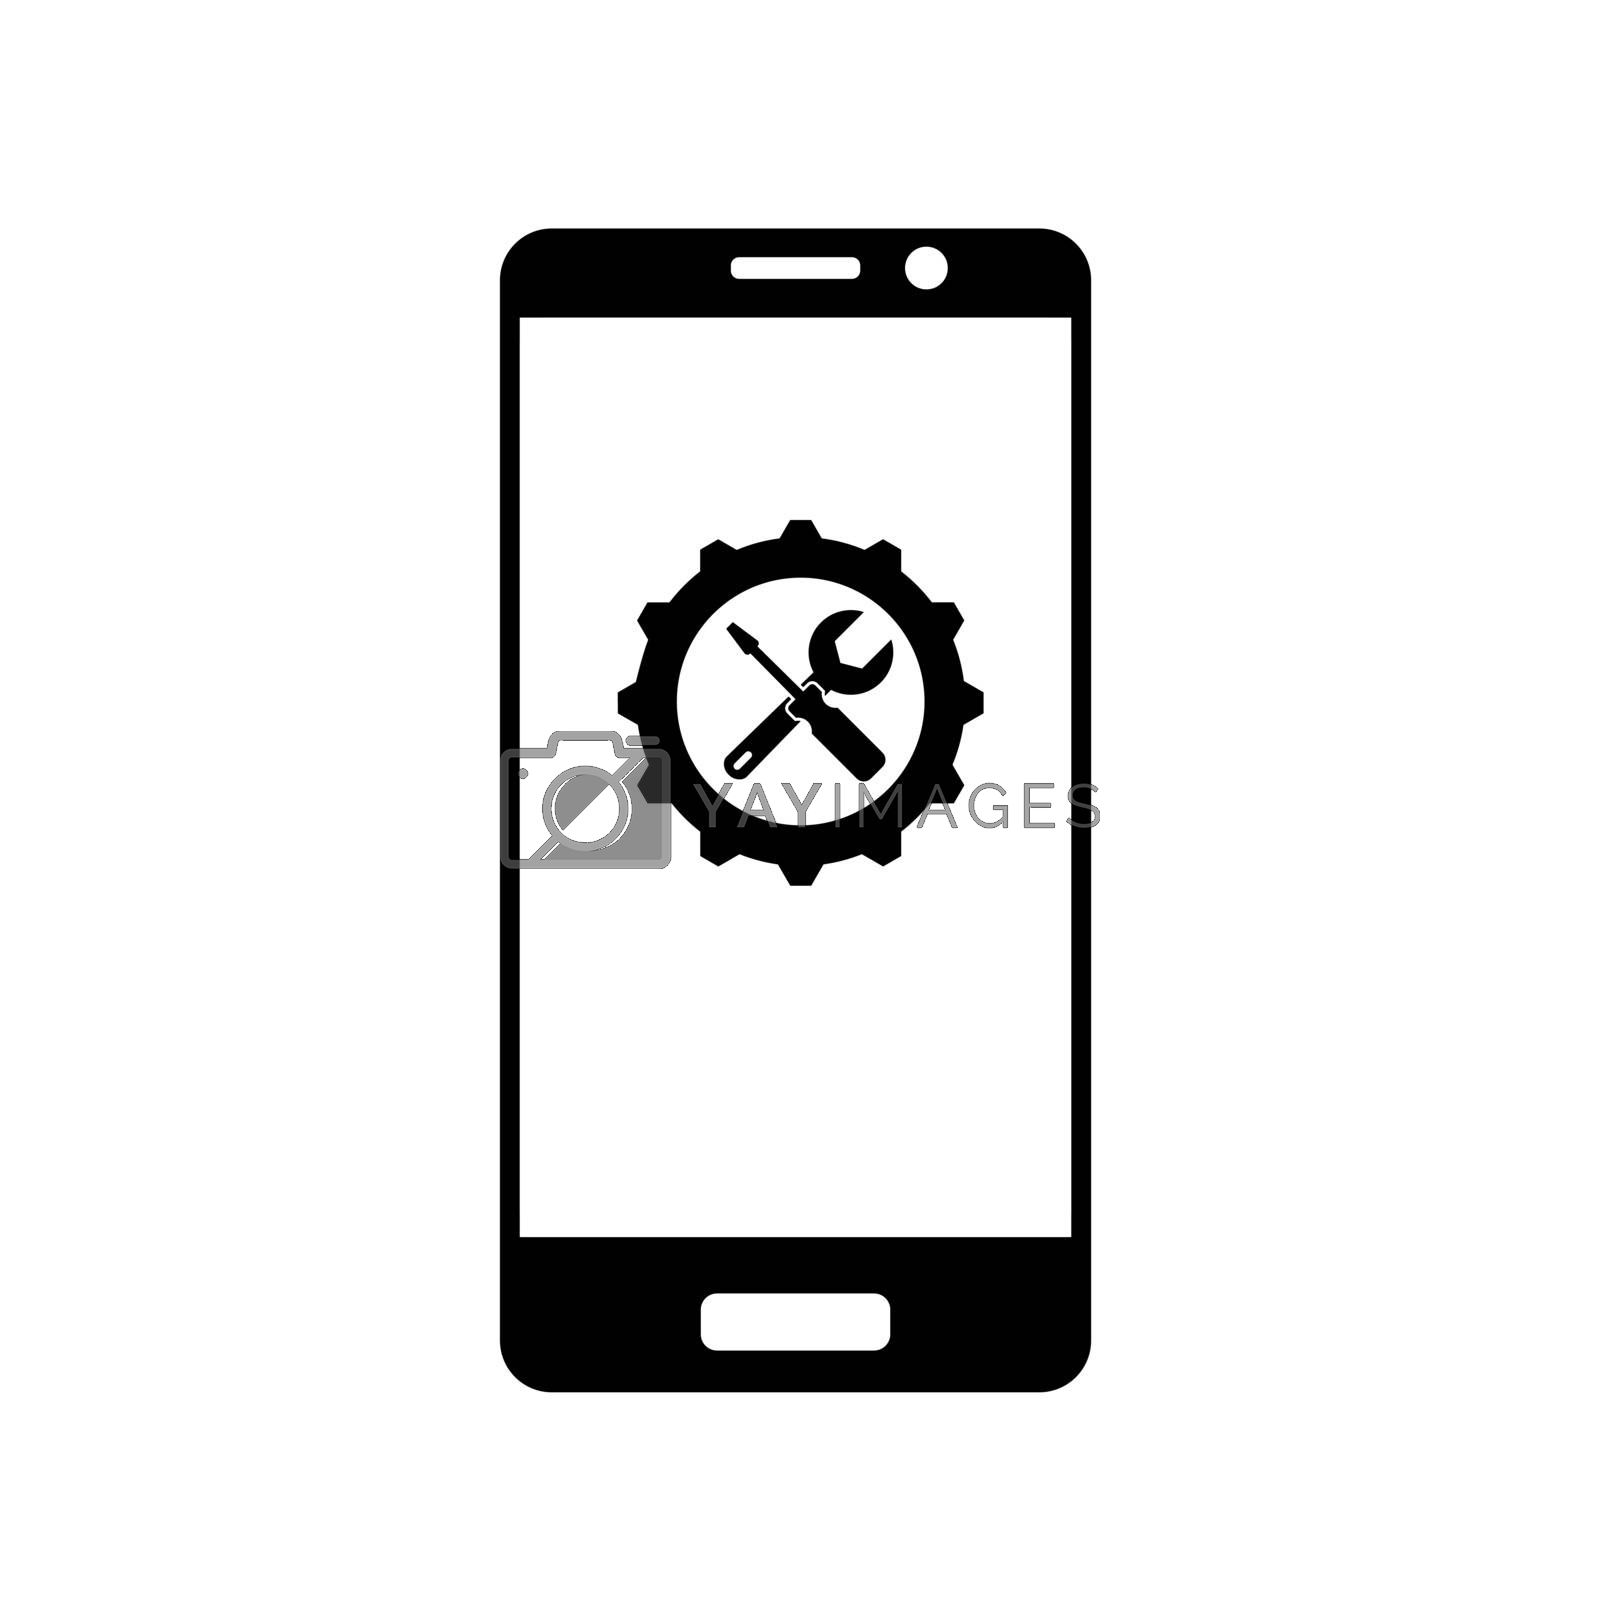 Gear with a key and a screwdriver on the smartphone screen, flat icon